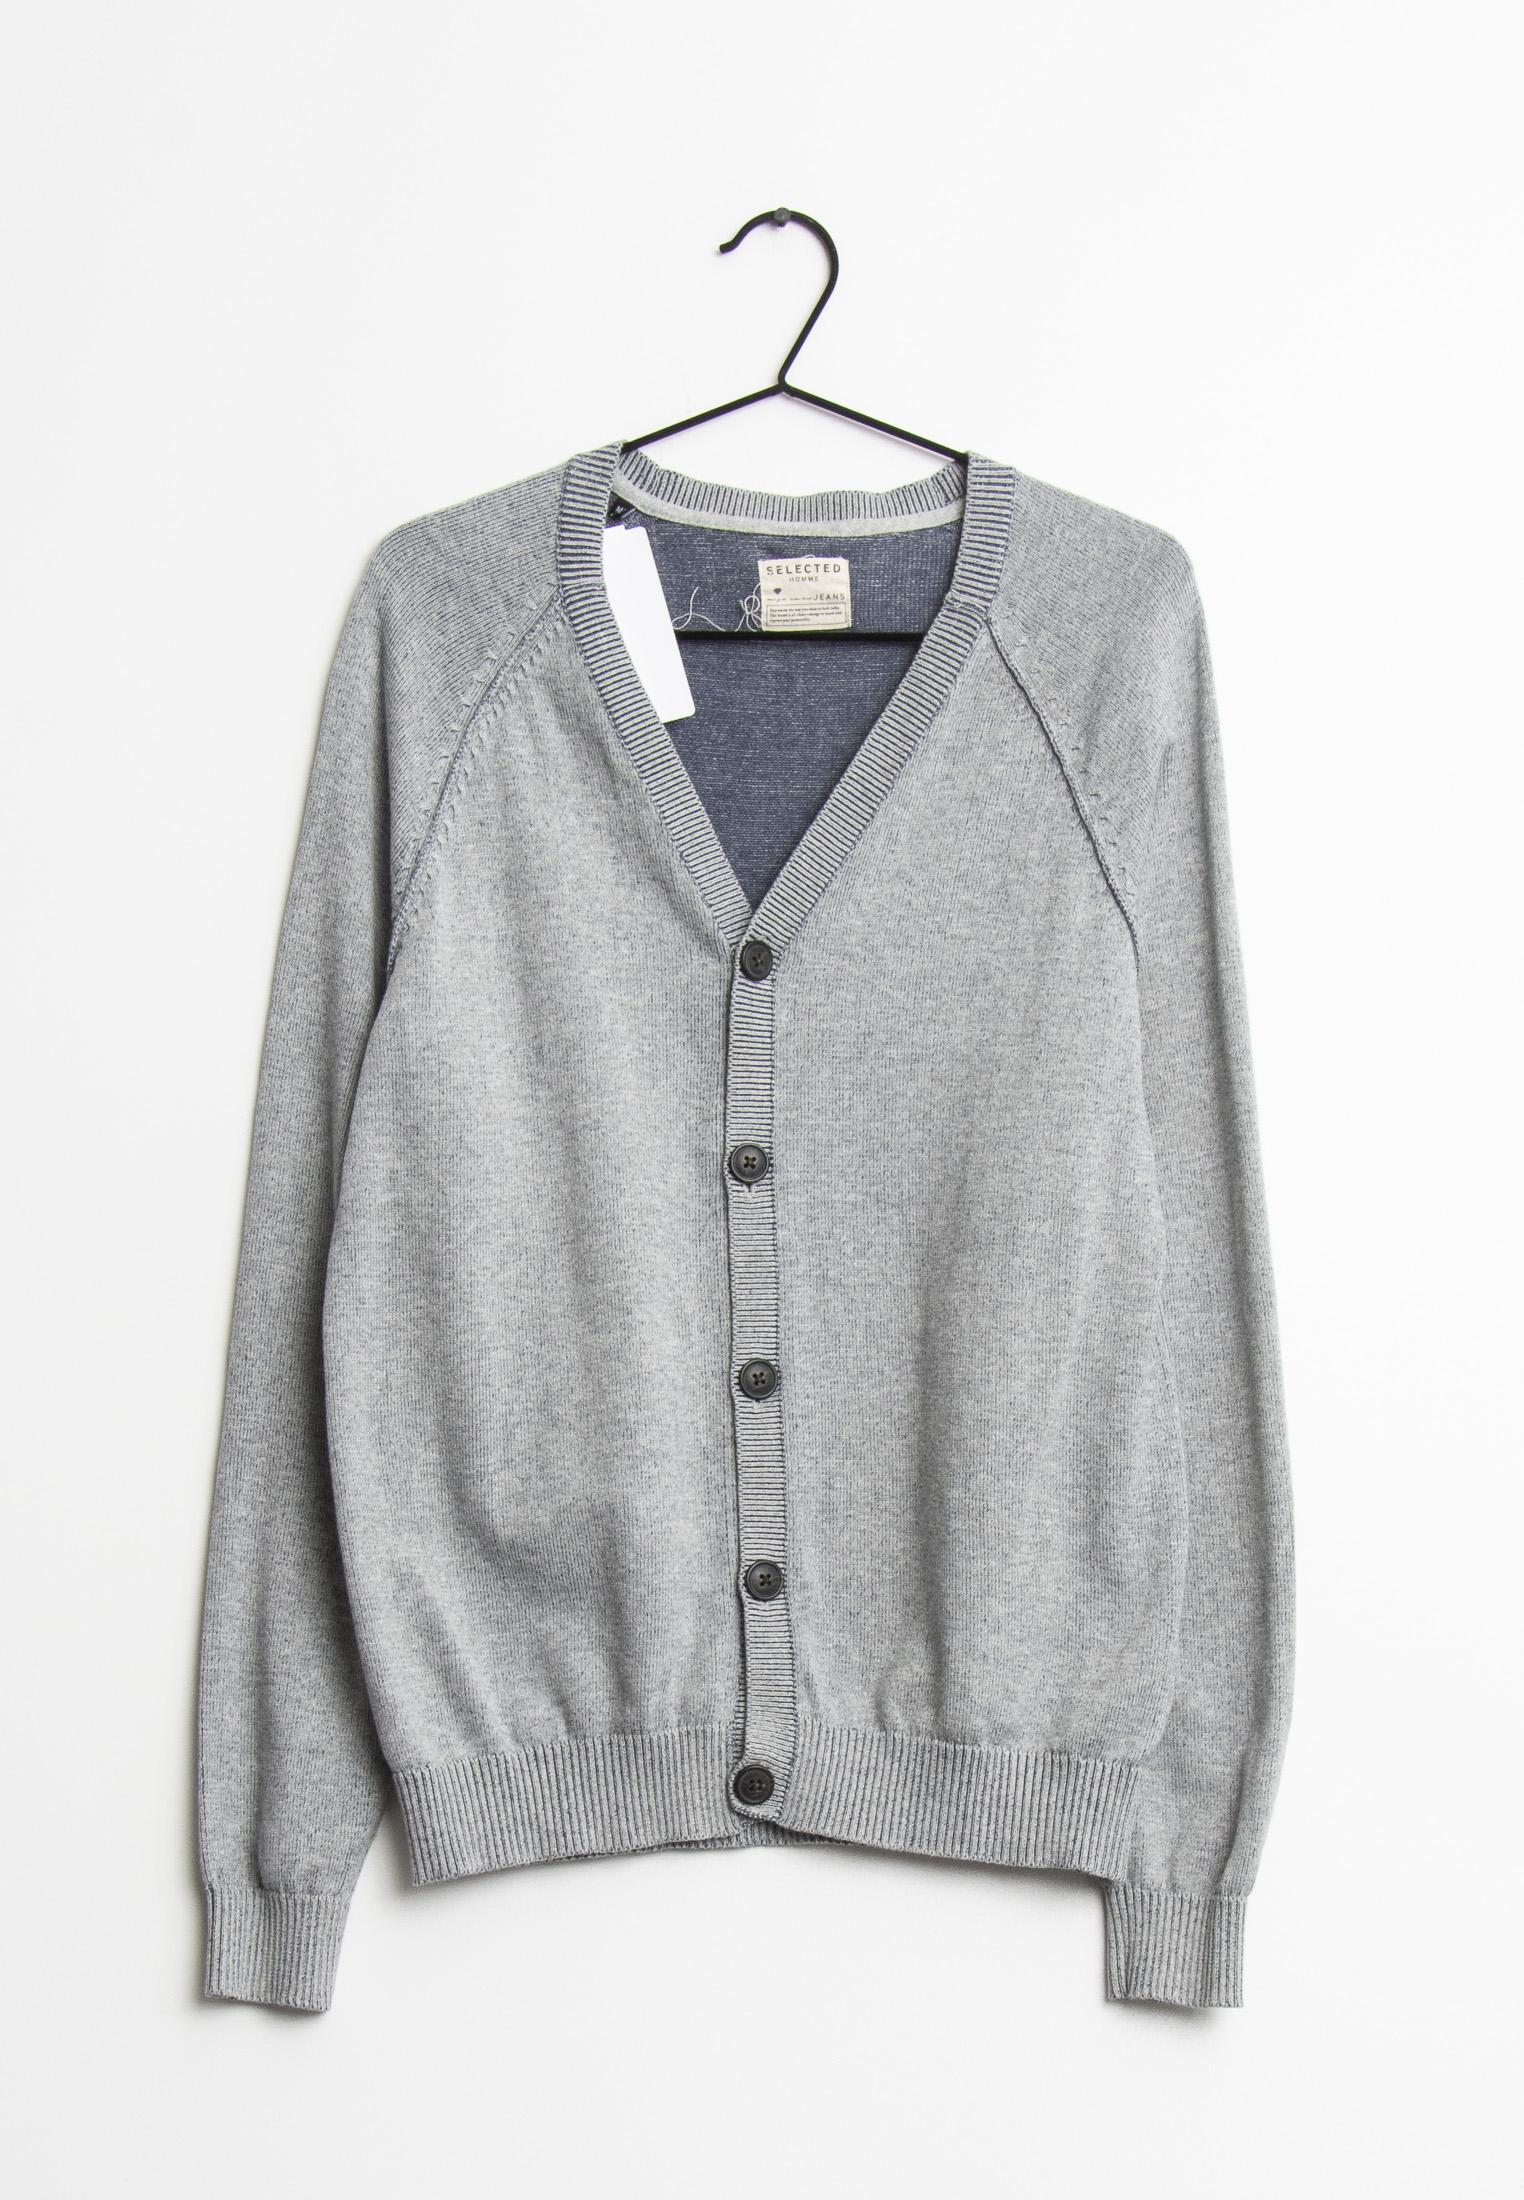 Selected Homme cardigan, grå, M